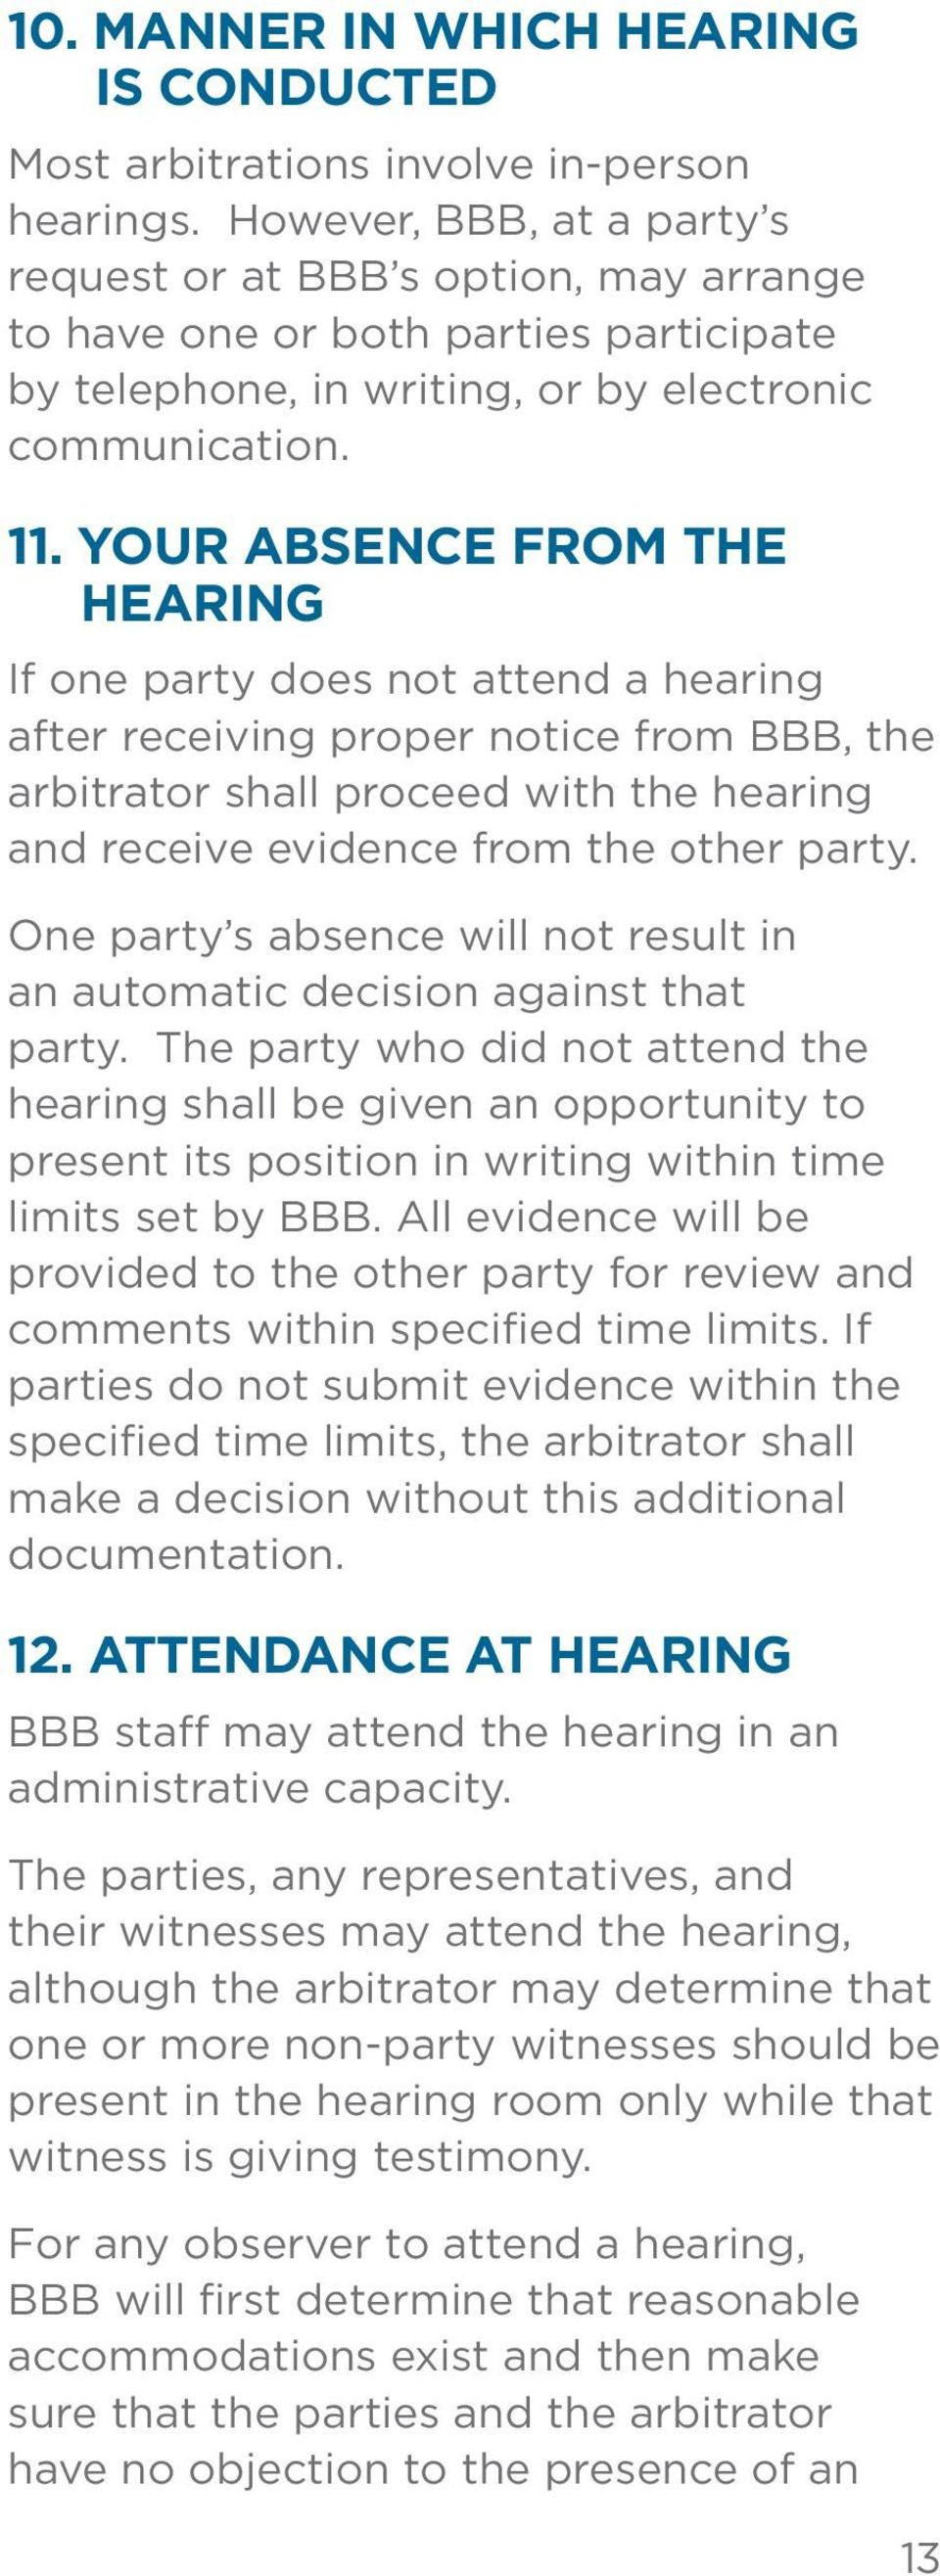 YOUR ABSENCE FROM THE HEARING If one party does not attend a hearing after receiving proper notice from BBB, the arbitrator shall proceed with the hearing and receive evidence from the other party.